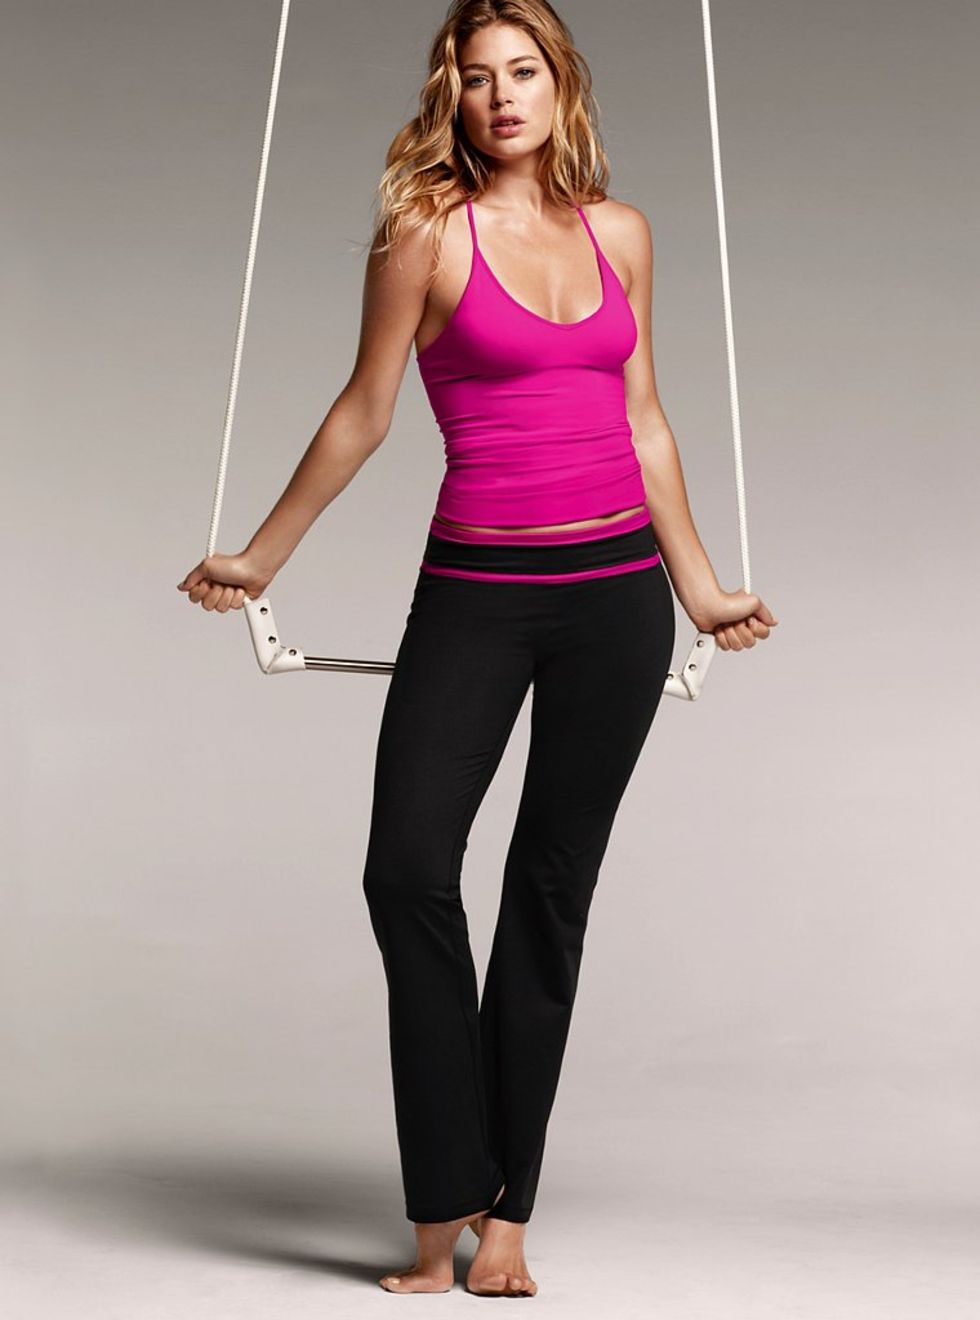 Doutzen Kroes Sweaty in Victoria's Secret VSX Workout Clothes